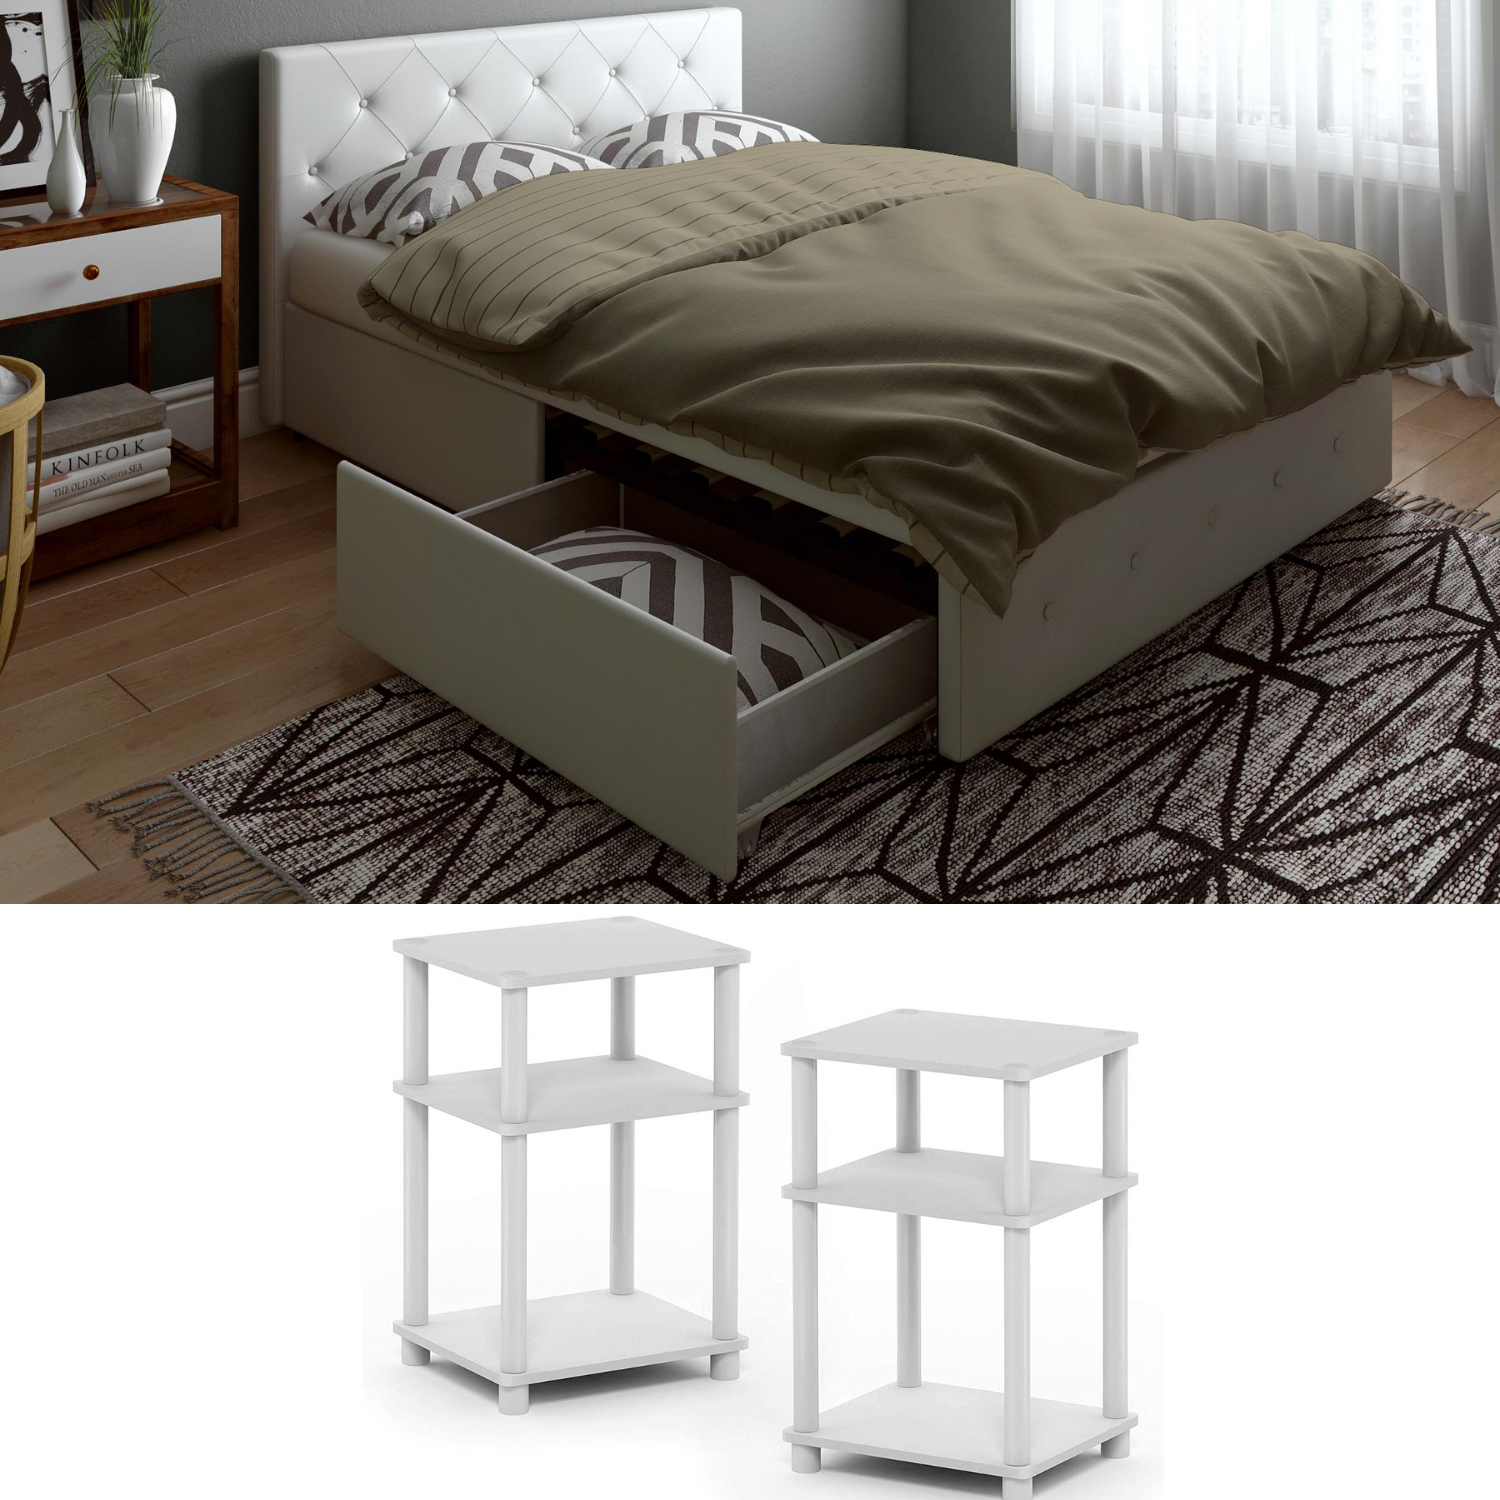 Queen Size Bedroom Set Furniture Modern White Leather Bed Nightstand NEW 3 Piece